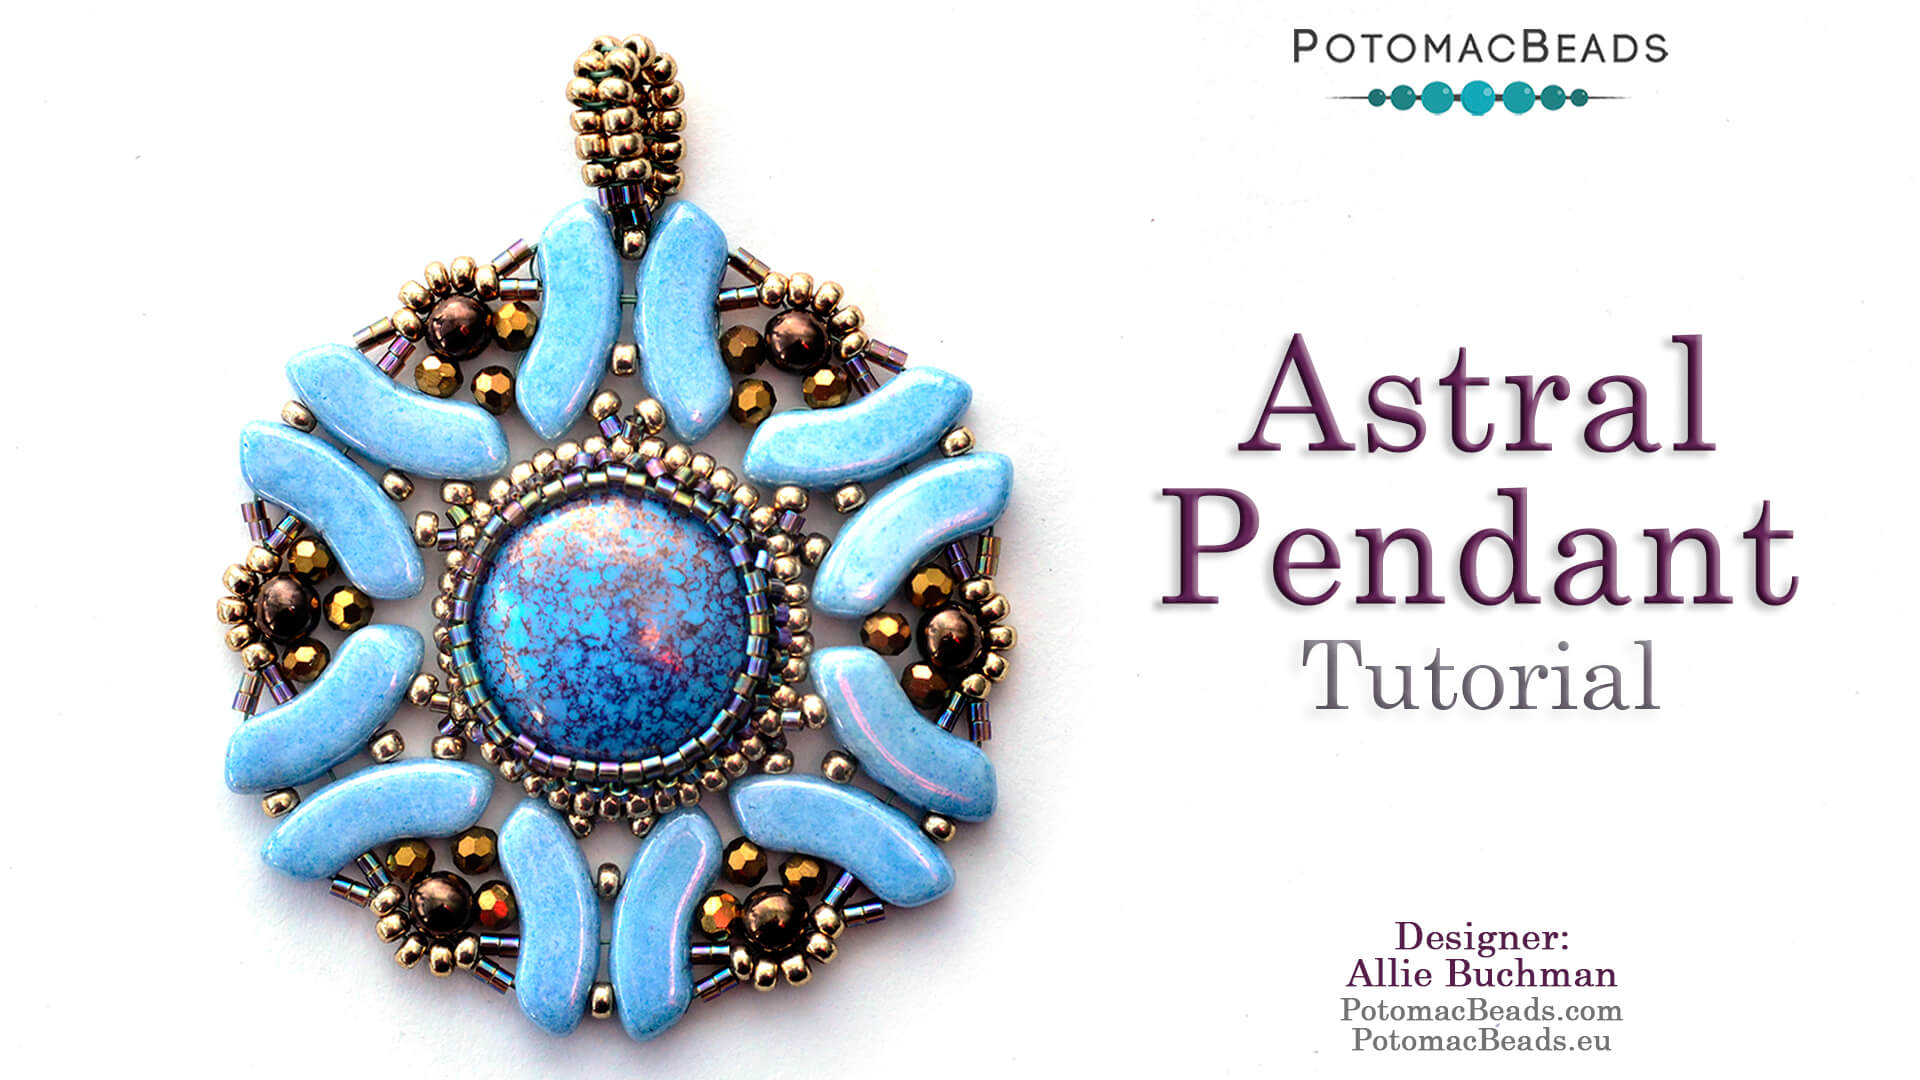 How to Bead / Videos Sorted by Beads / Par Puca® Bead Videos / Astral Pendant Tutorial